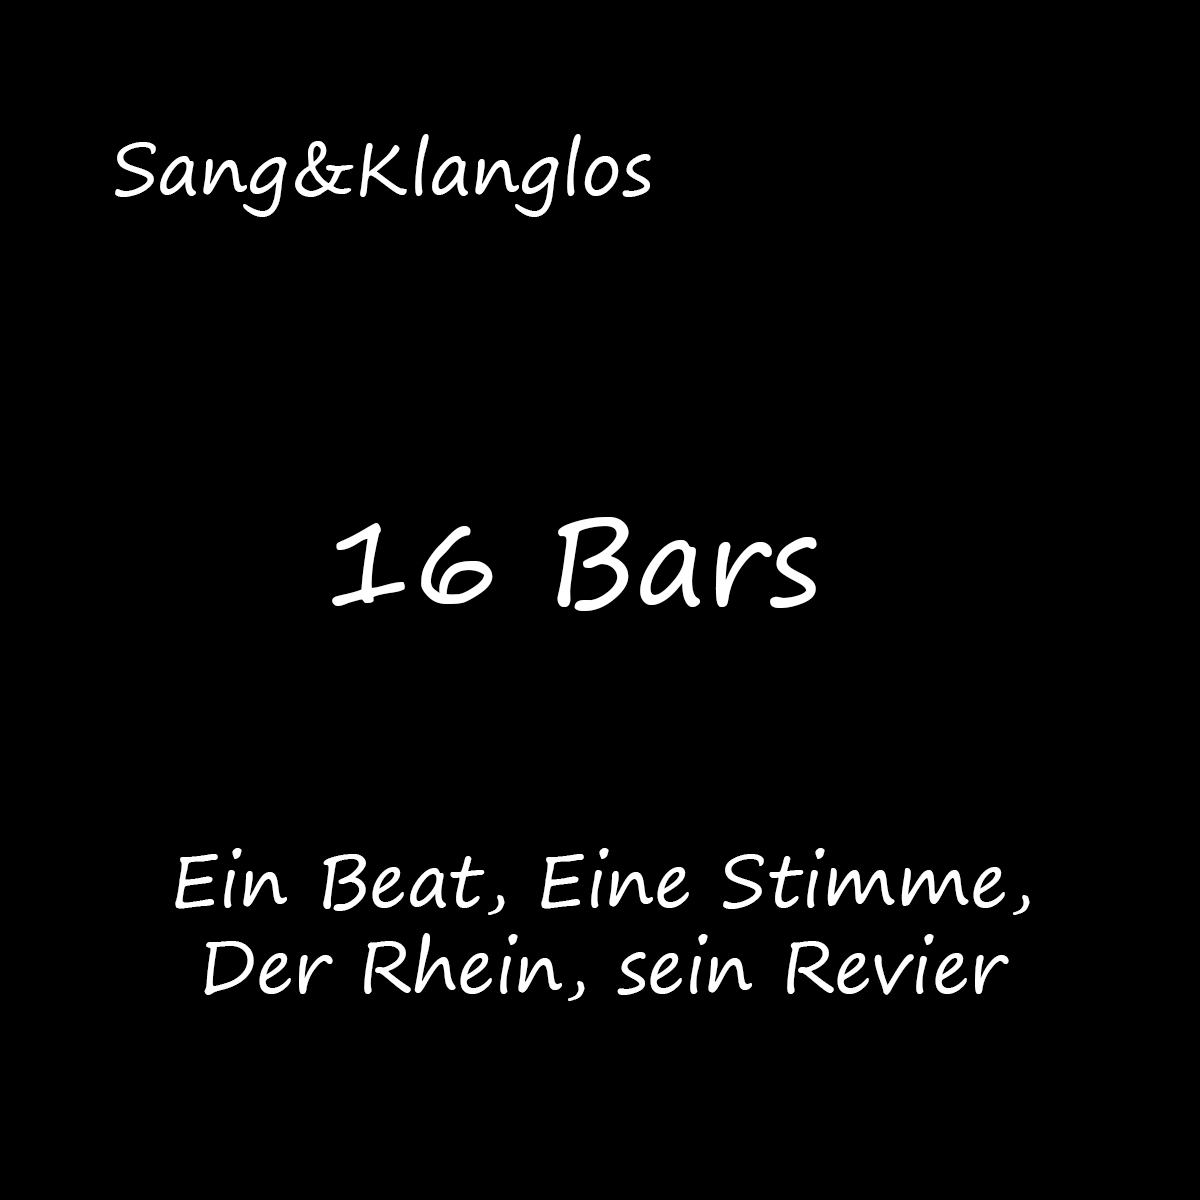 Upcoming: Sang&Klanglos - 16 Bars